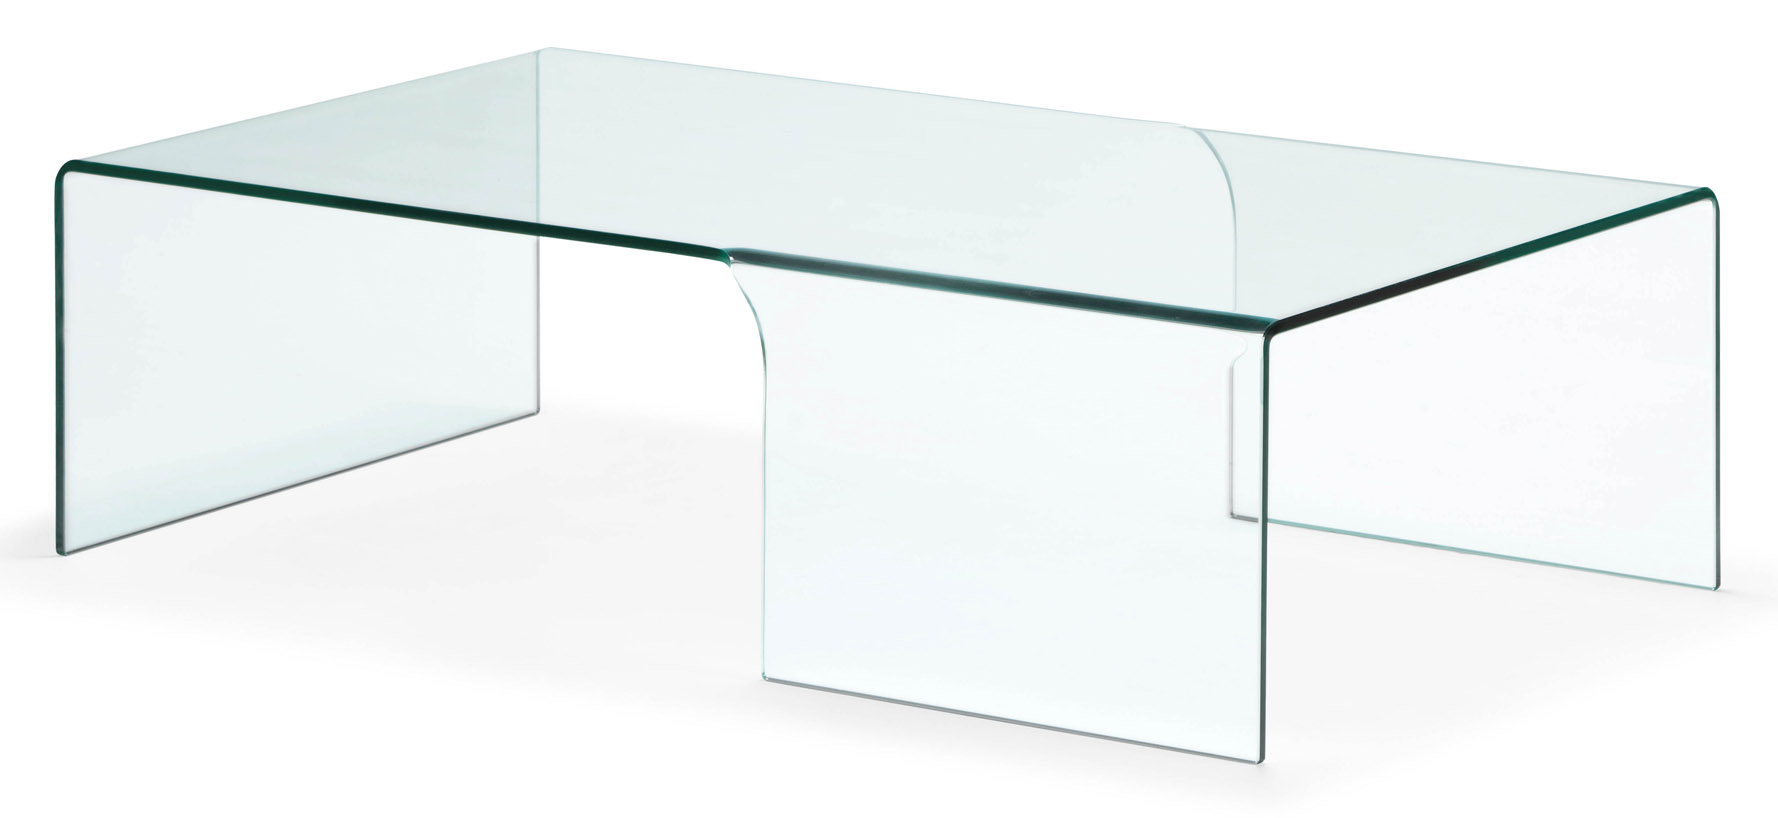 Lisa tempered glass coffee table clear glass zuri for Tempered glass coffee table